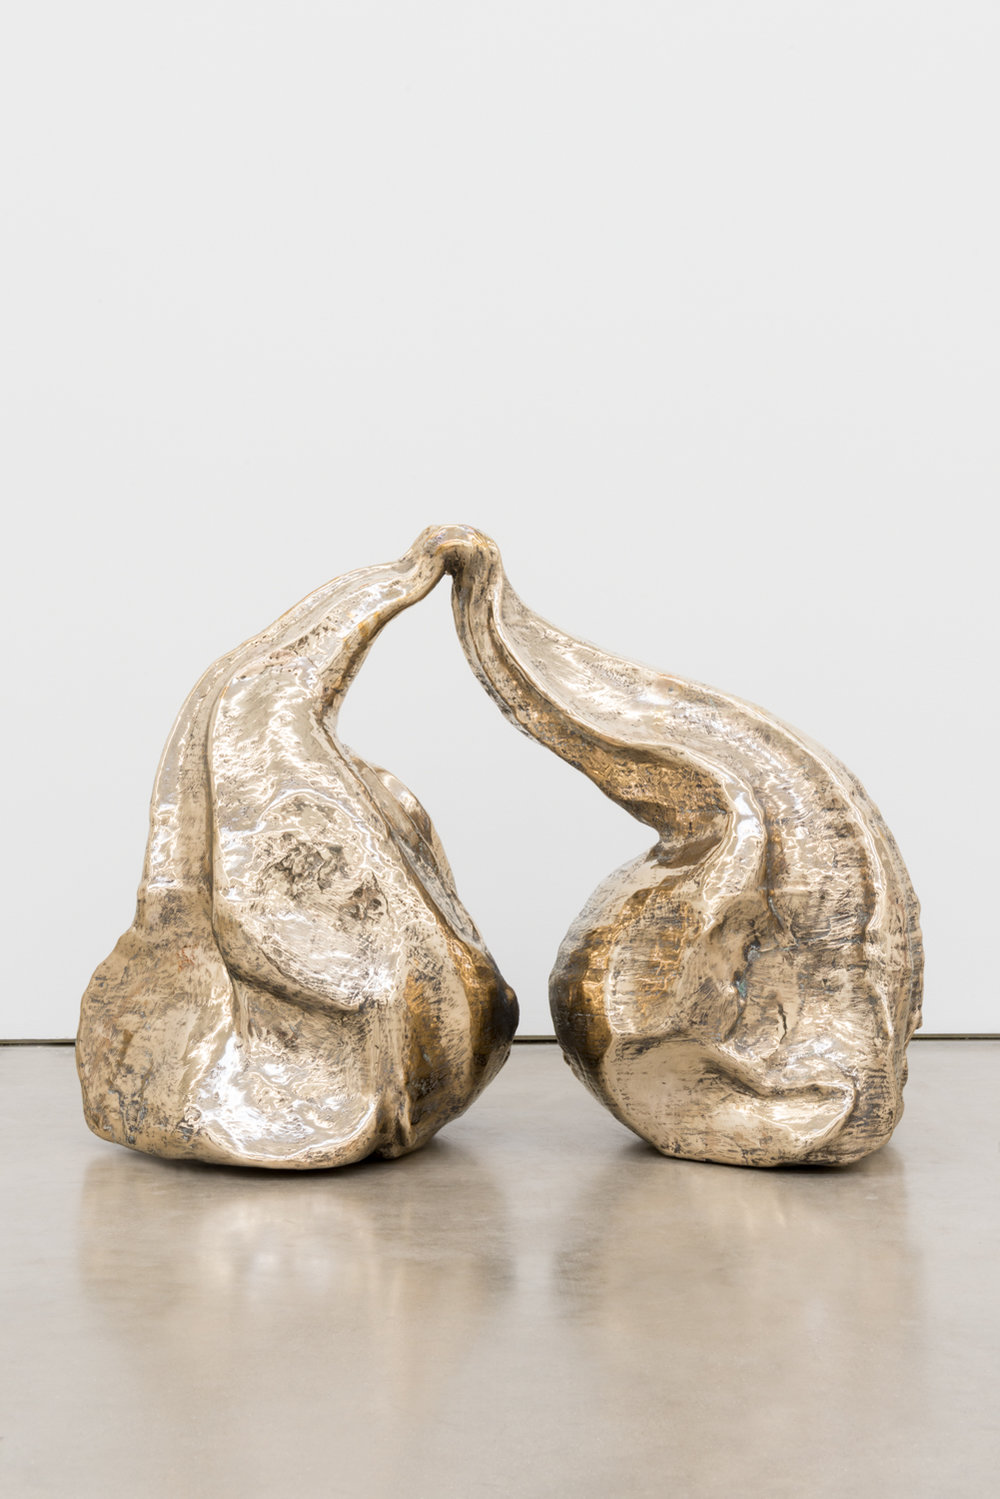 Alma Allen  Not Yet Titled  2016 Bronze 24h x 30w x 13d in AA063